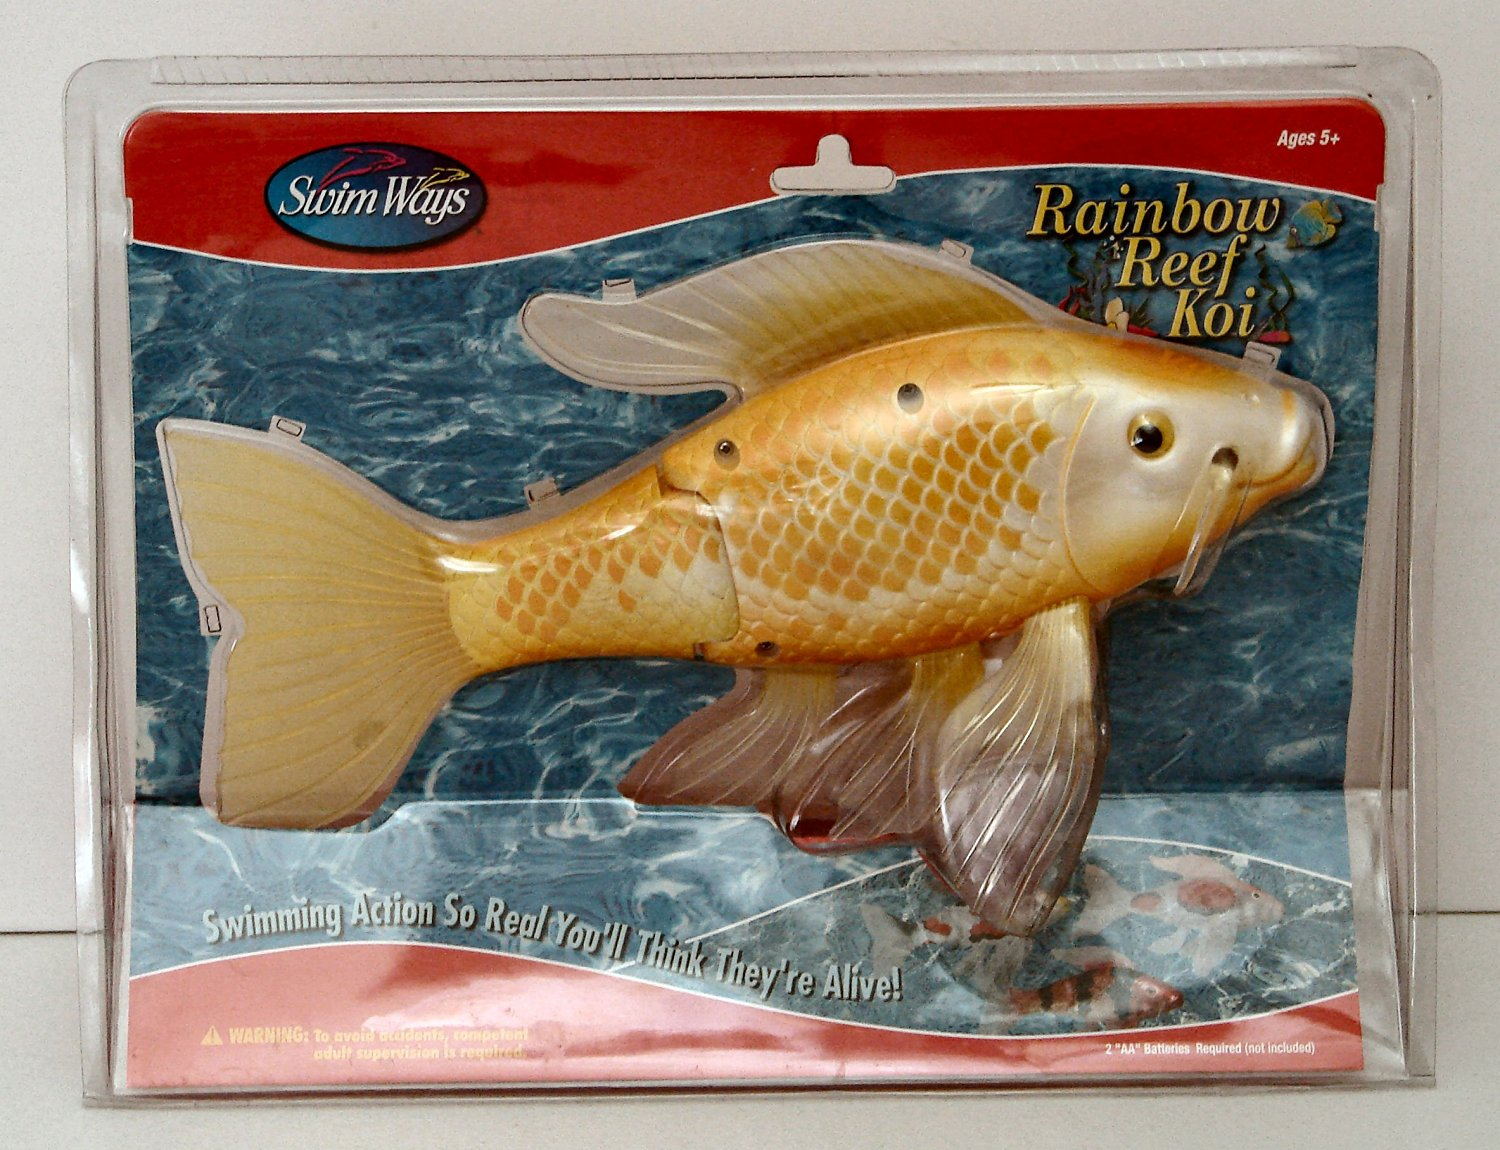 Coolmathgames Com Christmas Ornaments: Cheap Rainbow Reef Fish, Find Rainbow Reef Fish Deals On